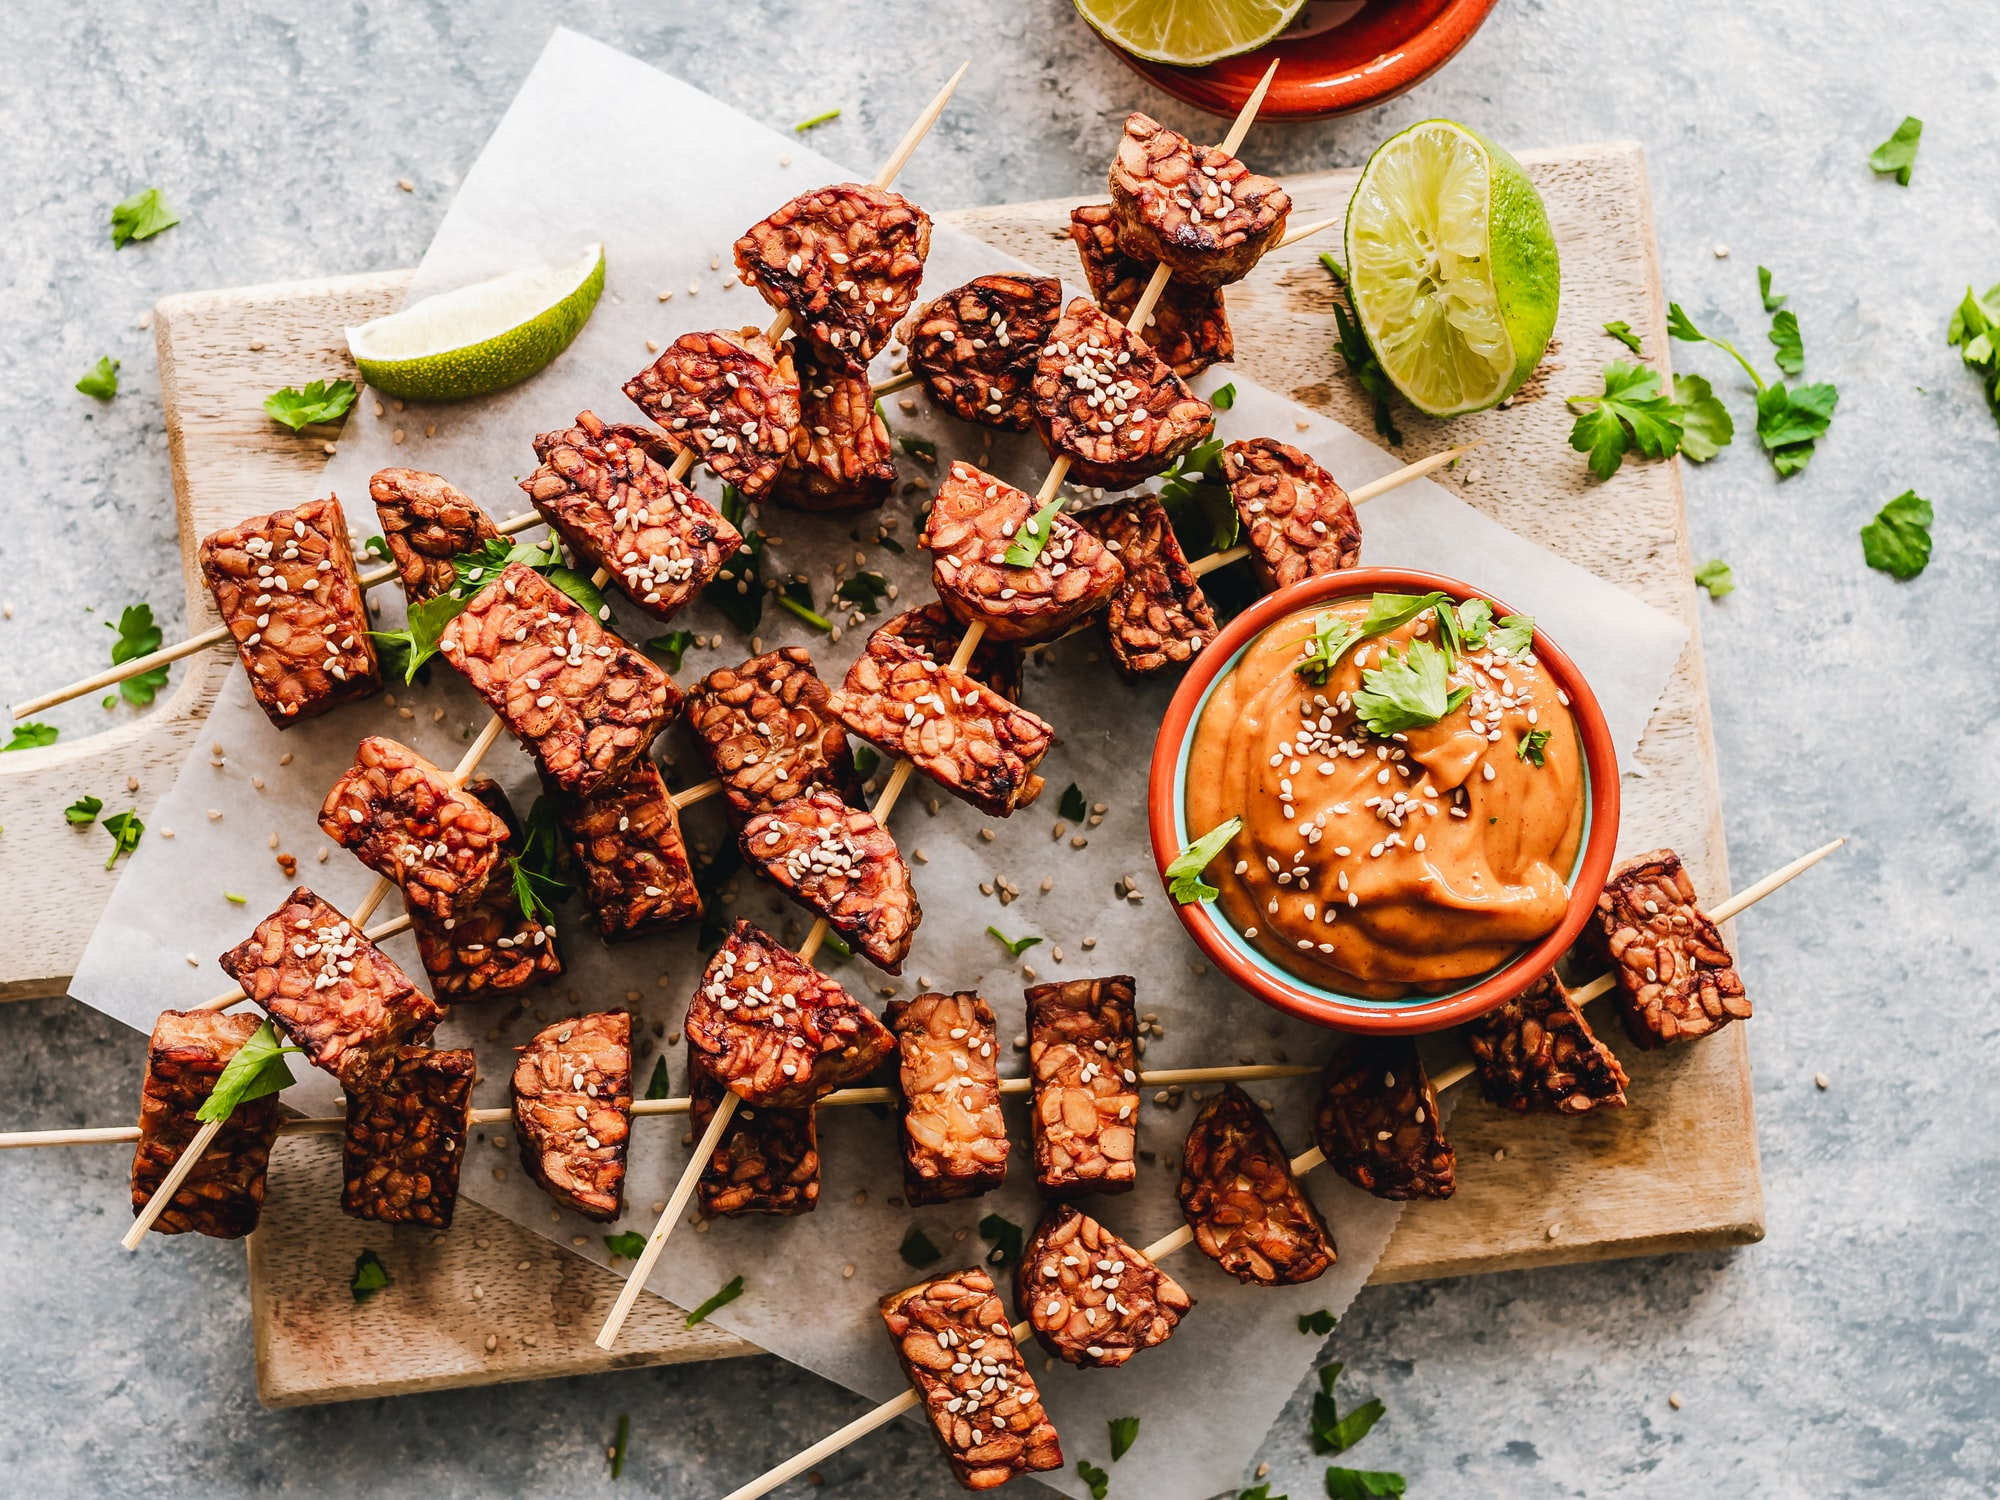 Sesame tempeh skewers with spicy peanut sauce.